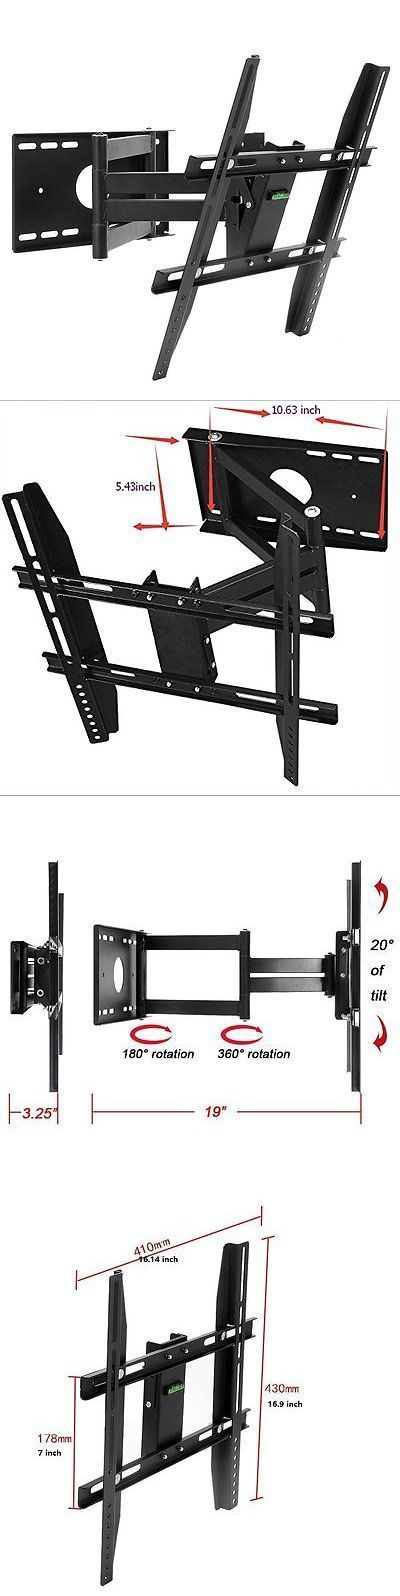 TV Mounts and Brackets: Articulating Full Motion Lcd Led Plasma Tv Wall Mount 26 29 37 39 40 42 47 50 55 -> BUY IT NOW ONLY: $30.99 on eBay!